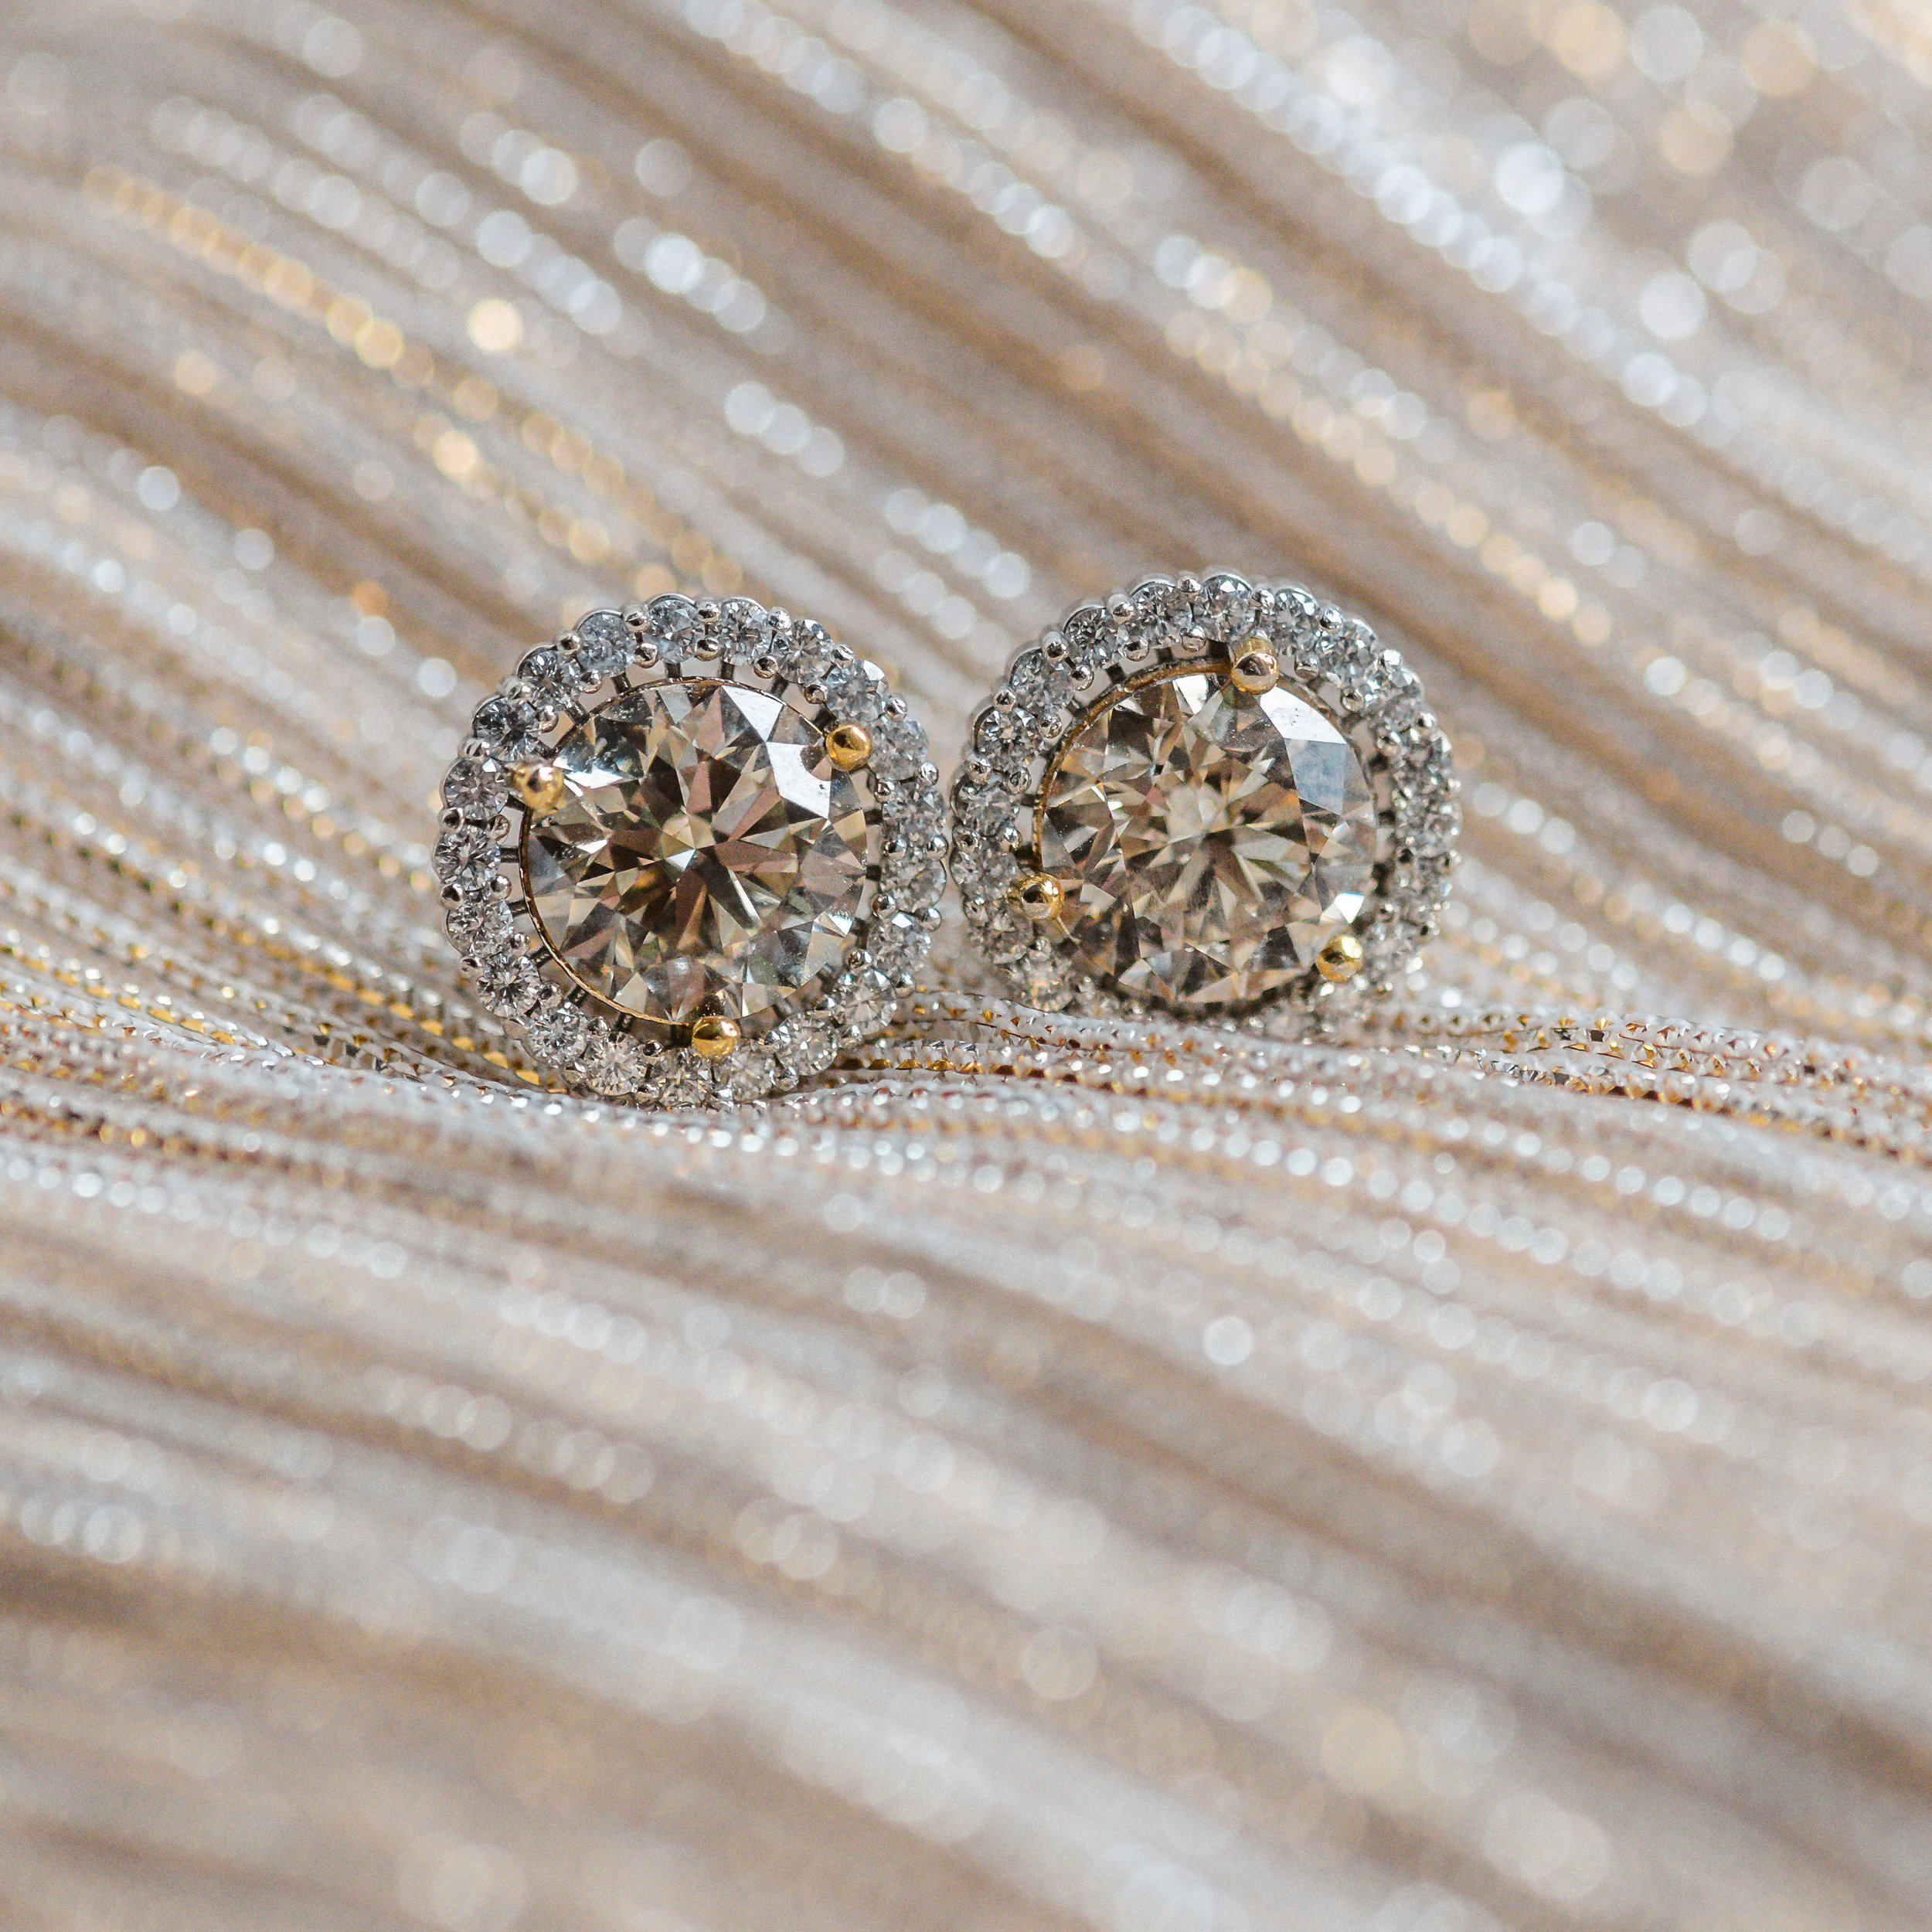 Well, tangle my tinsel and call me Santa! These might just be the most fabulous diamond earrings we have ever seen!